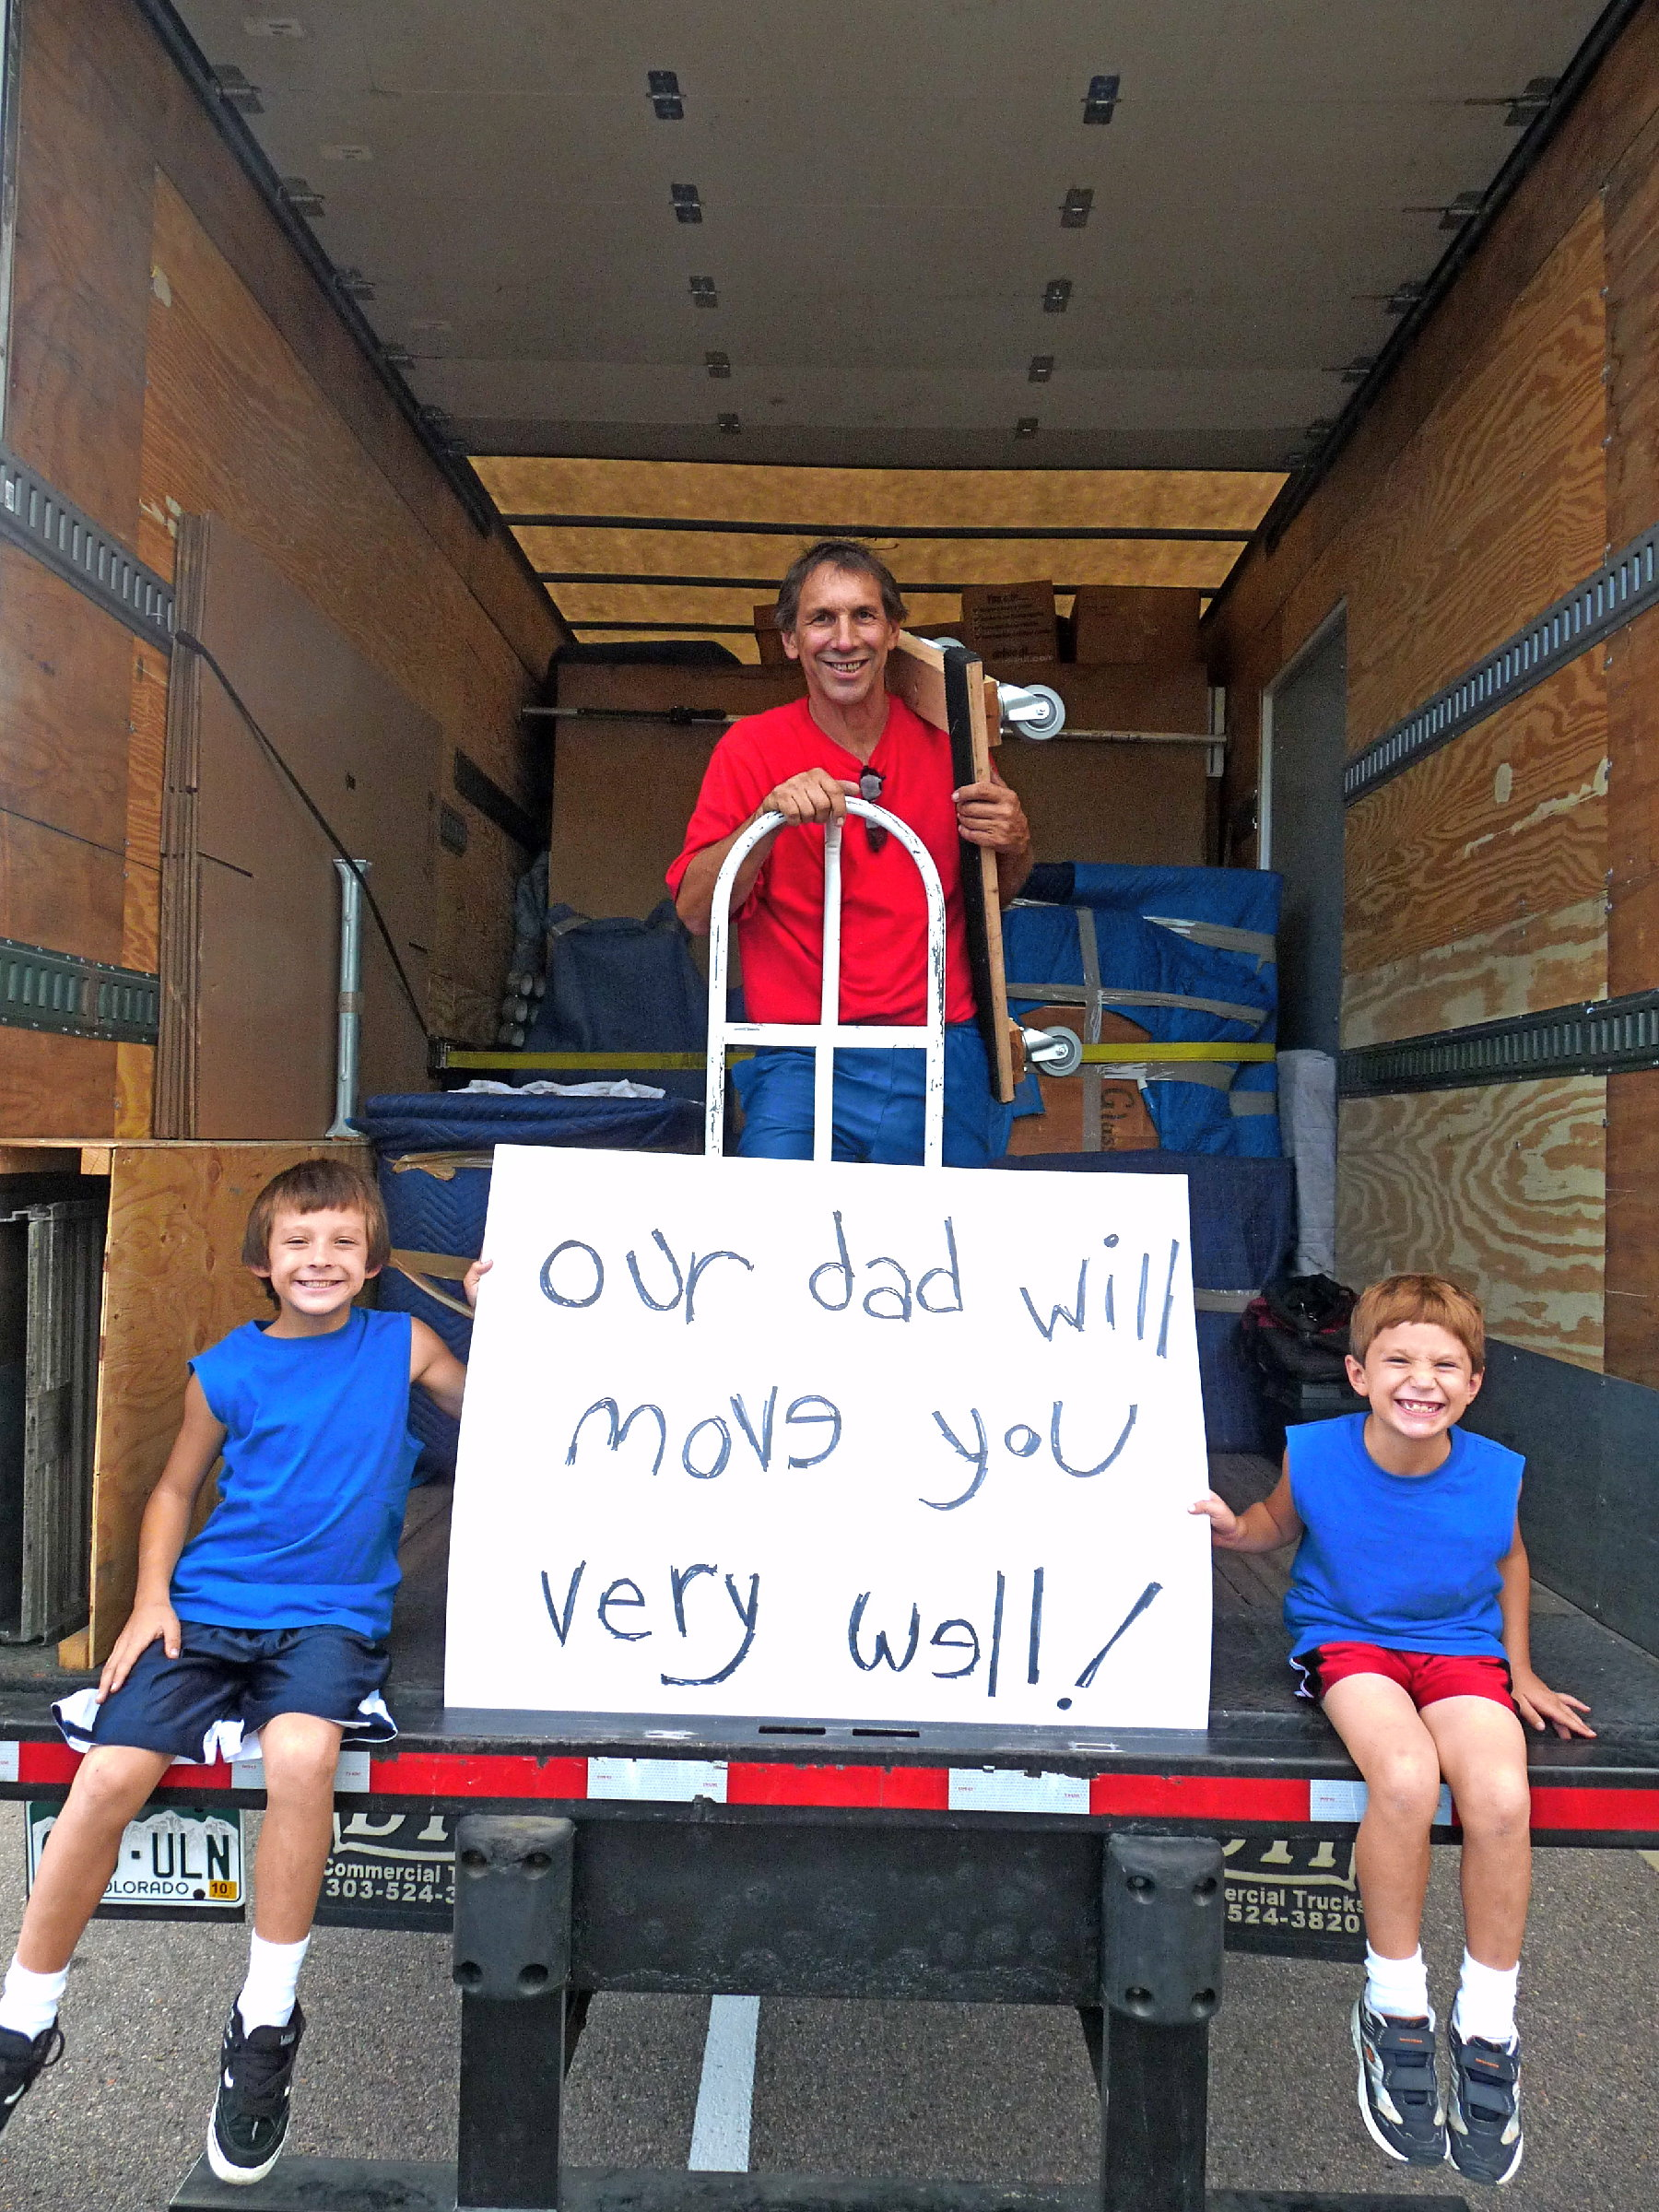 Professional movers helping a customer move in Boulder, CO